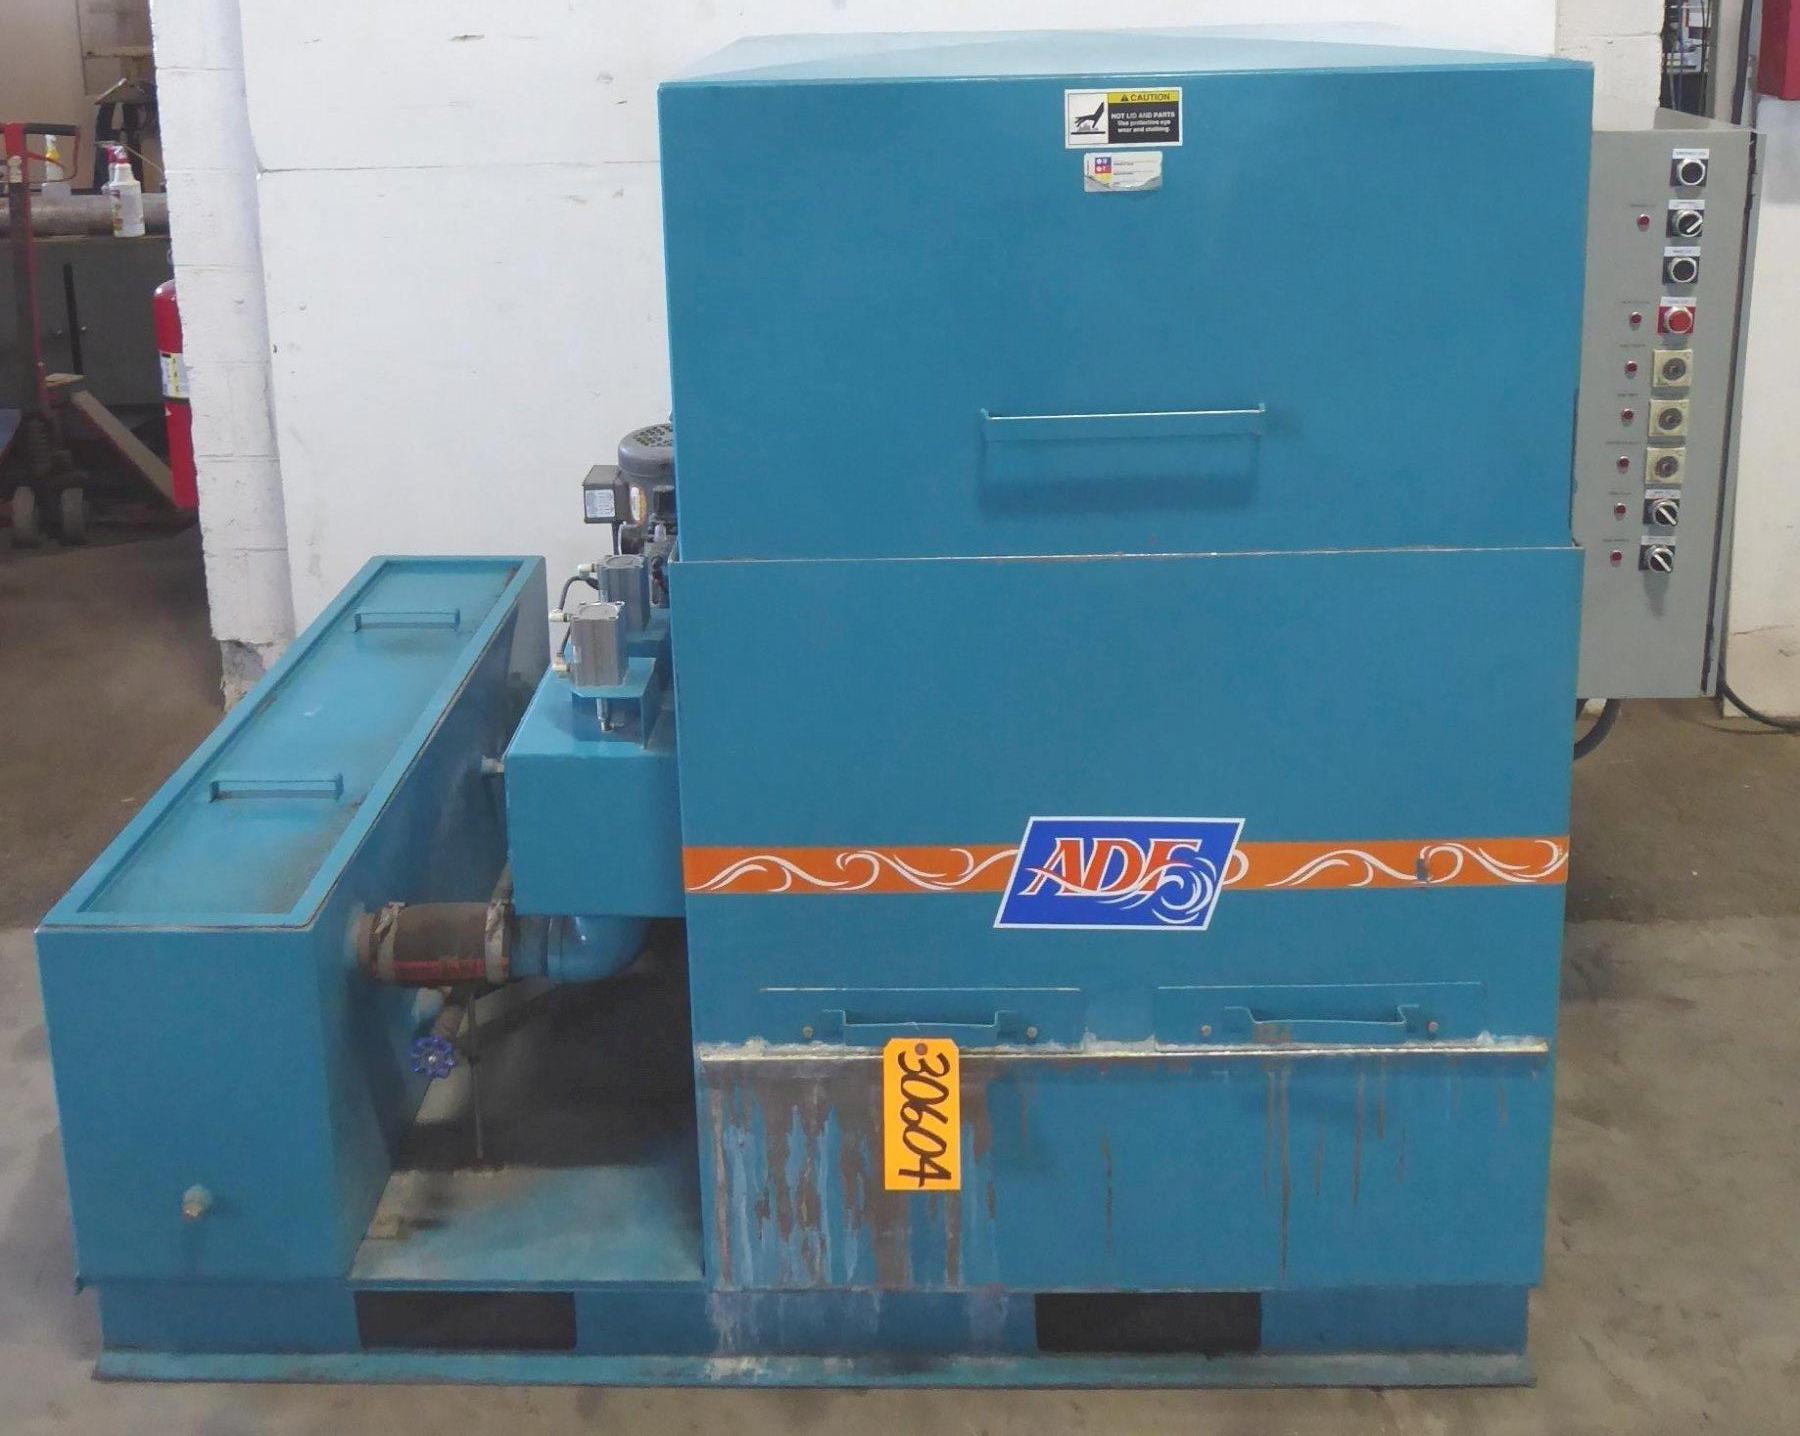 "ADF Top Load Load Low Pressure High Volume Parts Washer, Model 200, 28"" Diameter Turntable, 500 Lb. Capacity, 200 Deg. F, 100 Gallon Tank, 3 HP, 2010"